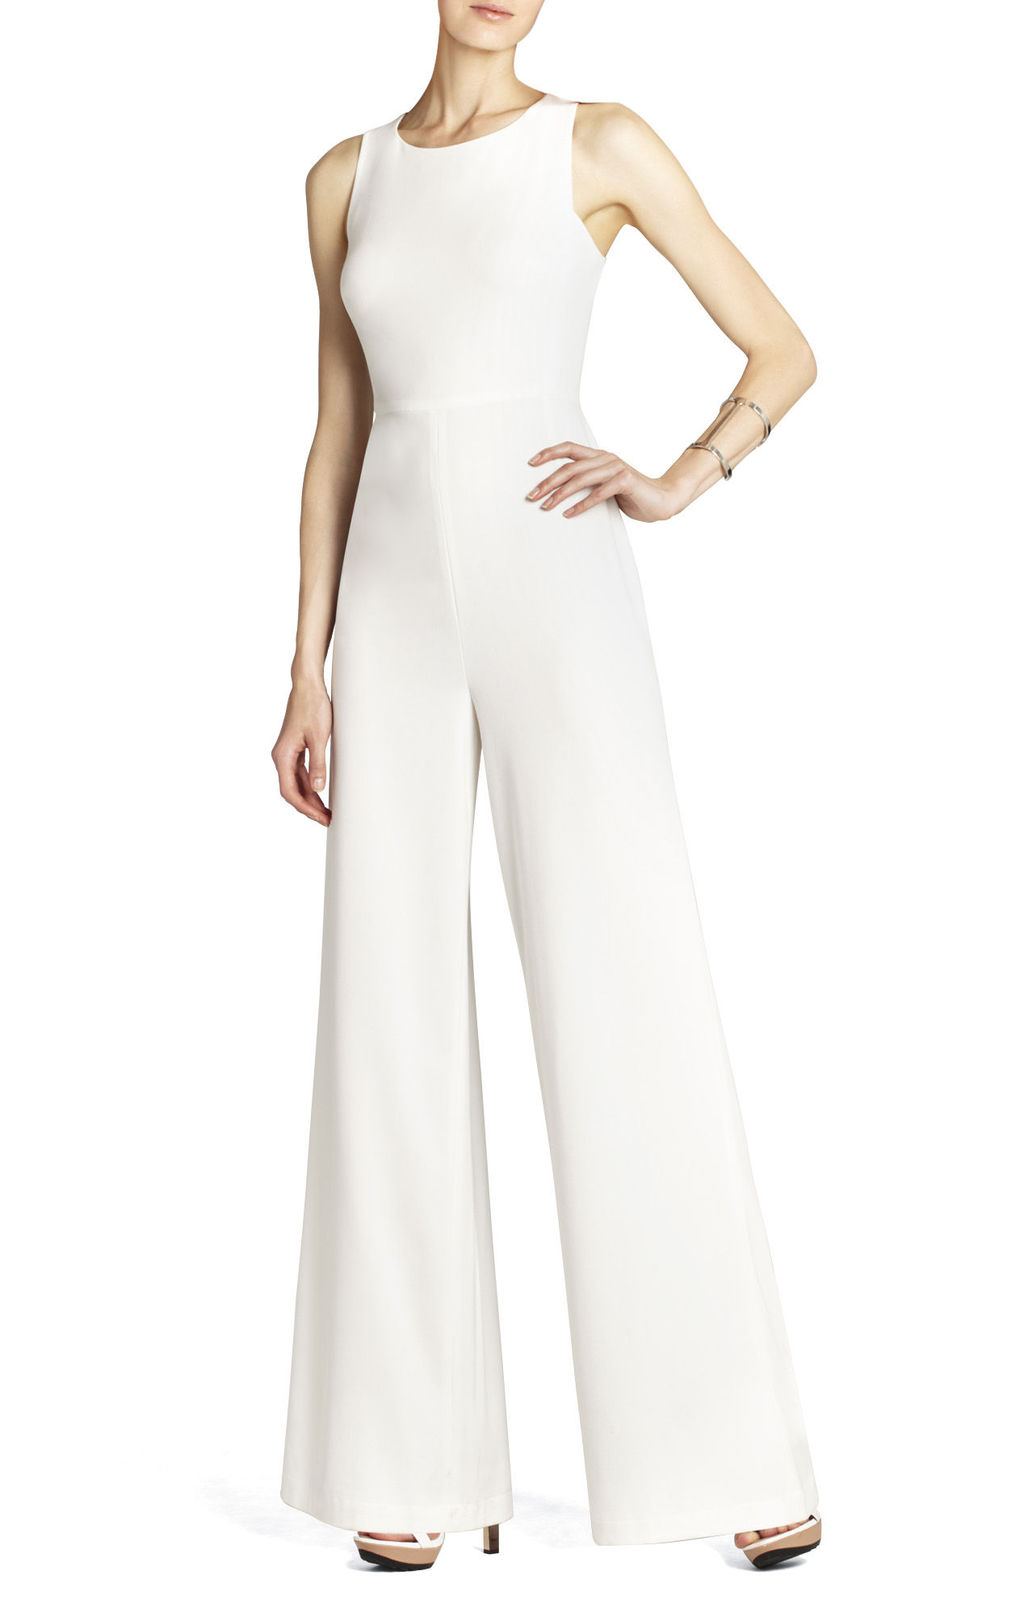 Bcbg wedding dress max azria bridal retro pants jumper for Dress pant outfits for wedding